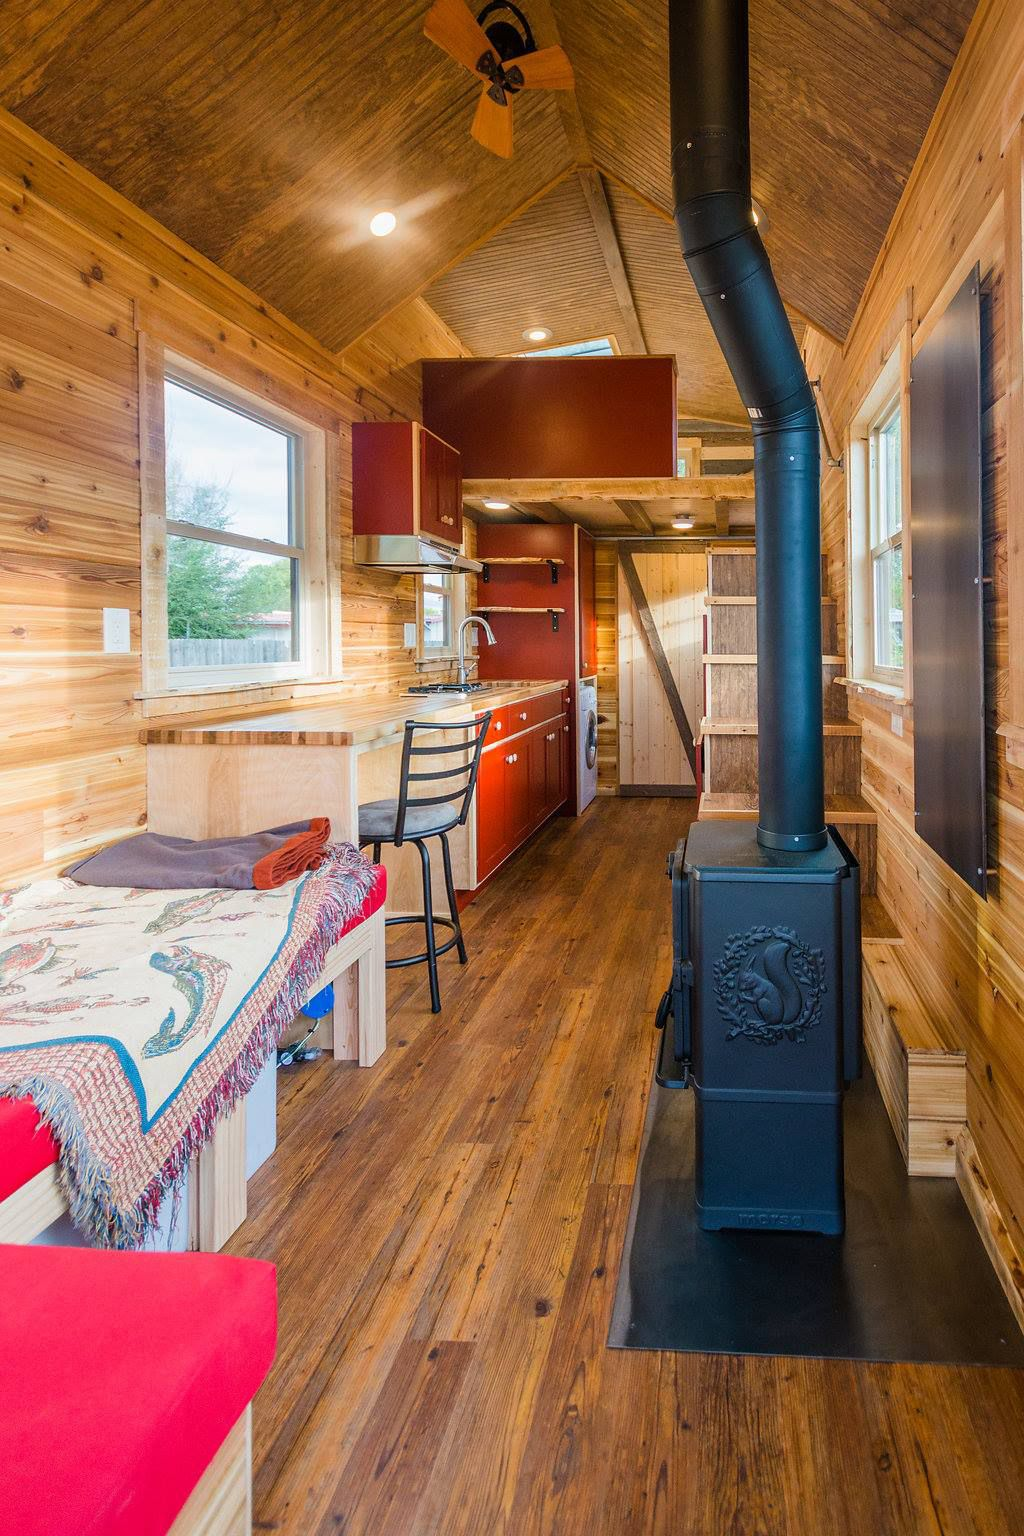 Davis Off Grid Tiny House By Mitchcraft Tiny Homes Tiny Living Tiny House Cabin Off Grid Tiny House Tiny House Builders